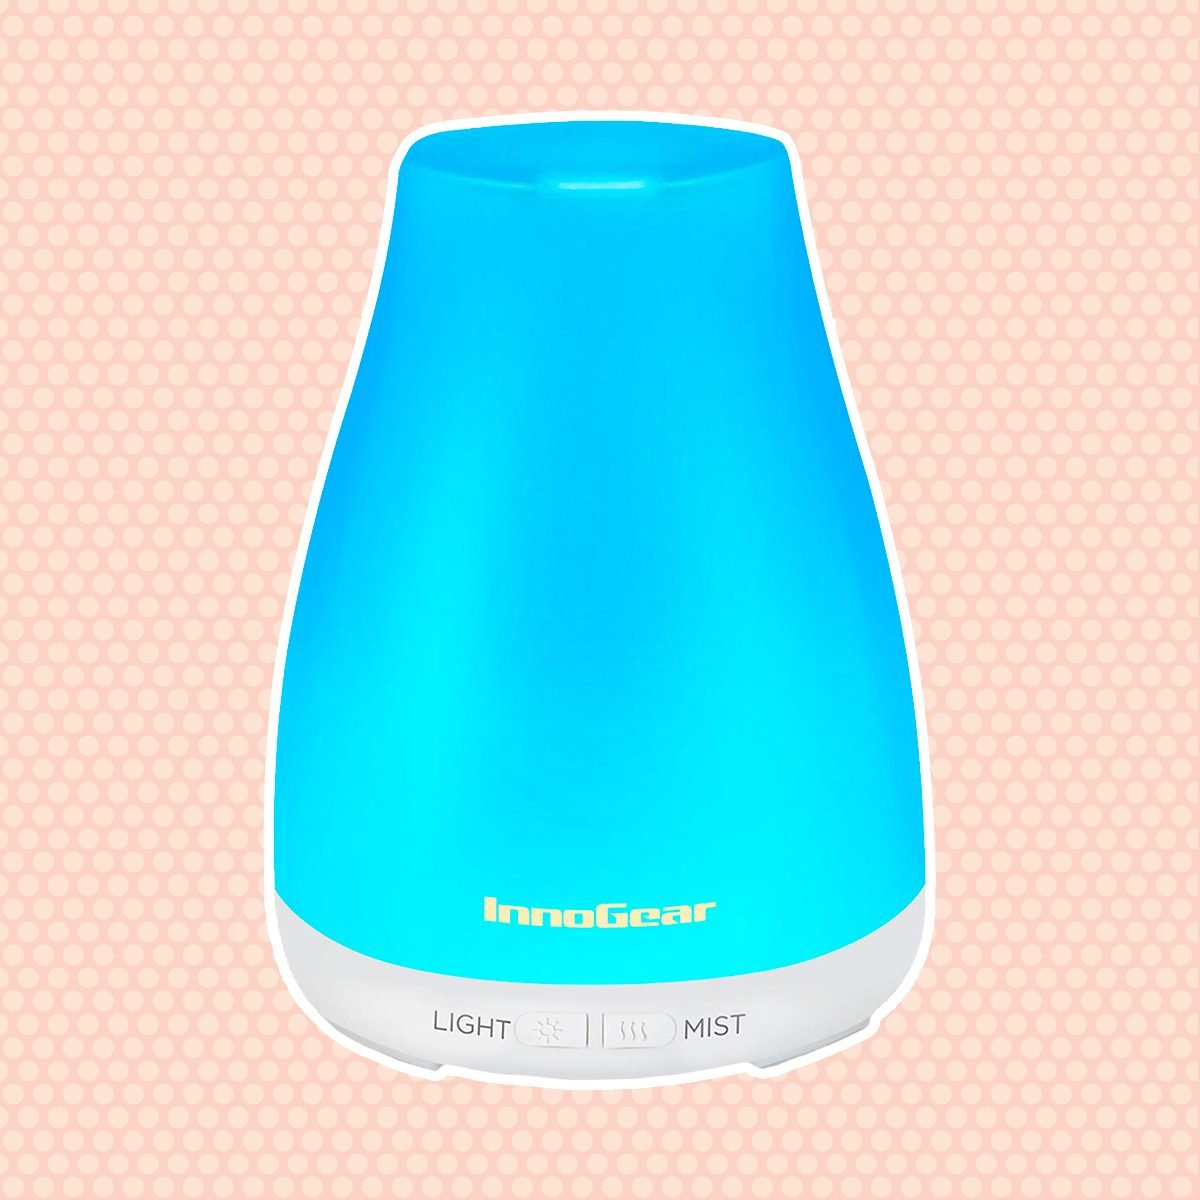 InnoGear Essential Oil Diffuser, Upgraded Diffusers for Essential Oils Aromatherapy Diffuser Cool Mist Humidifier with 7 Colors Lights 2 Mist Mode Waterless Auto off for Home Office Baby, Basic White